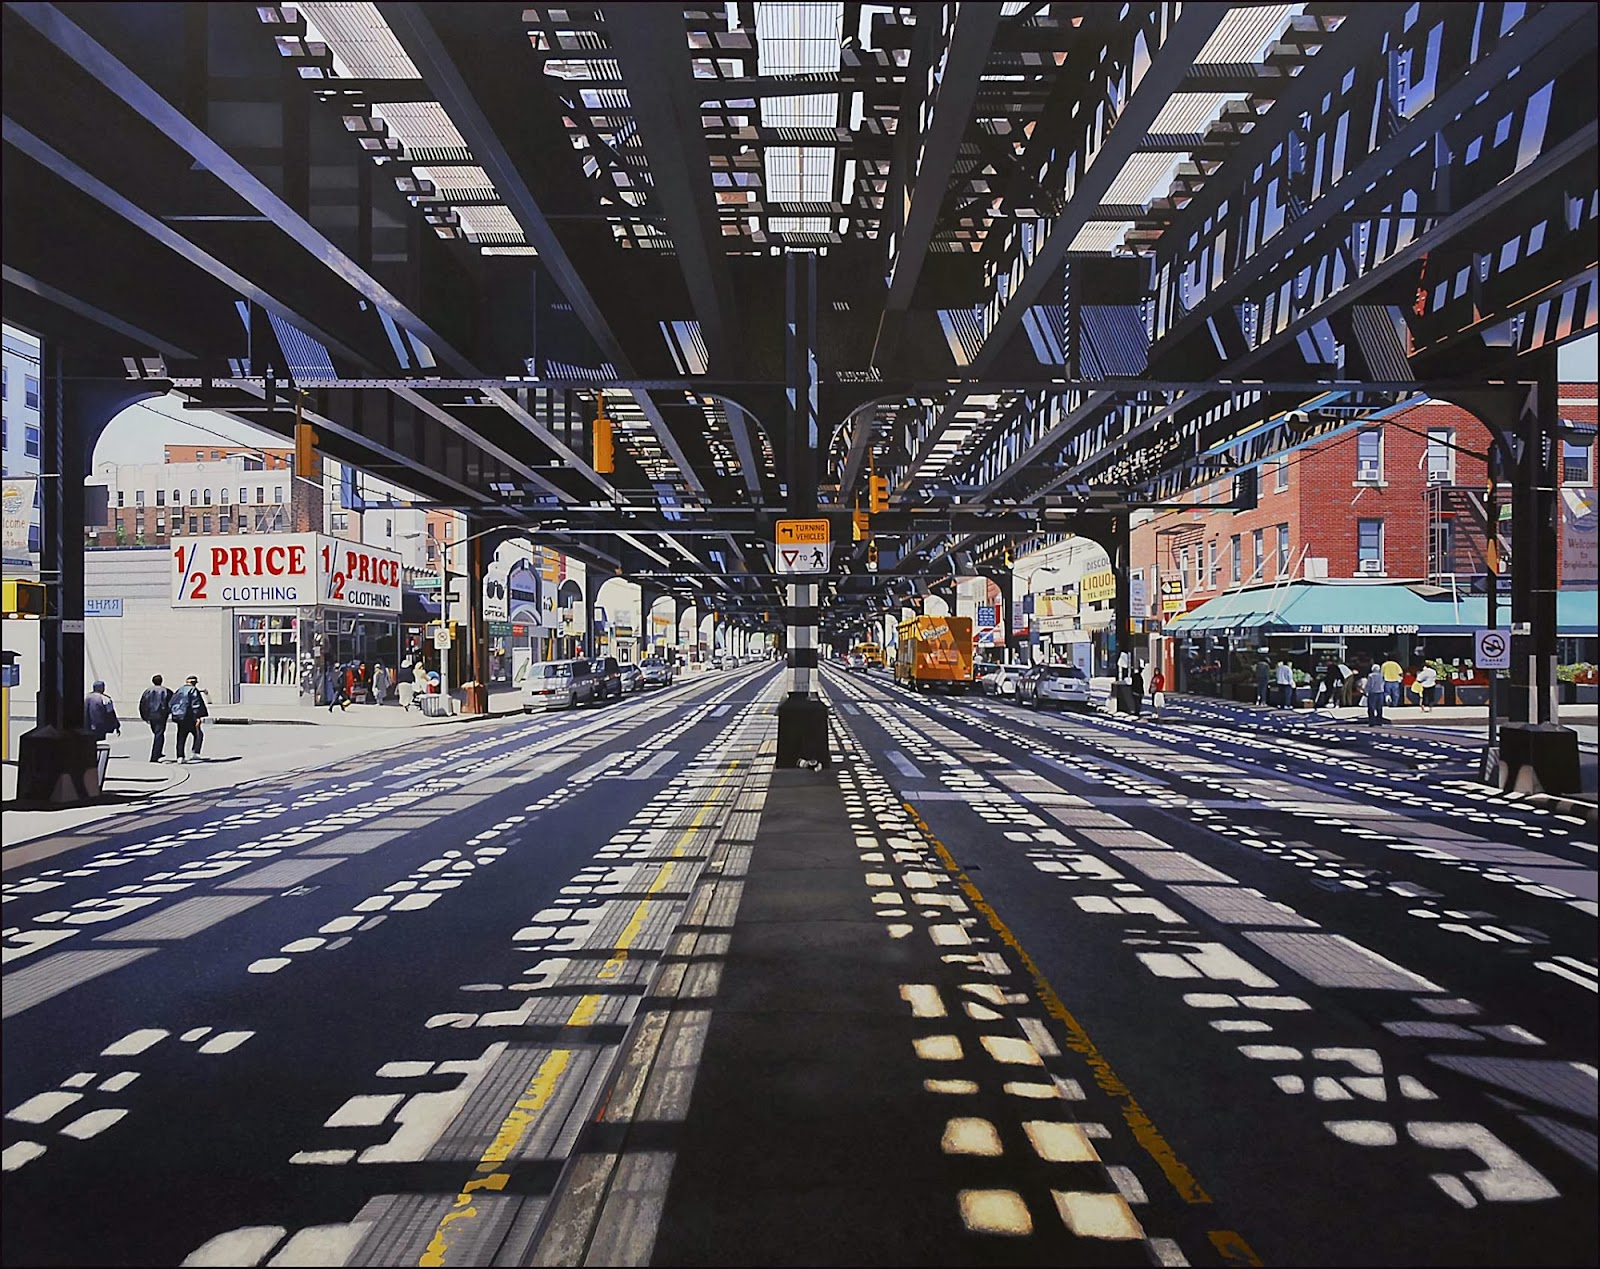 07-Nathan-Walsh-Hyper-Realistic-Cityscapes-Paintings-www-designstack-co